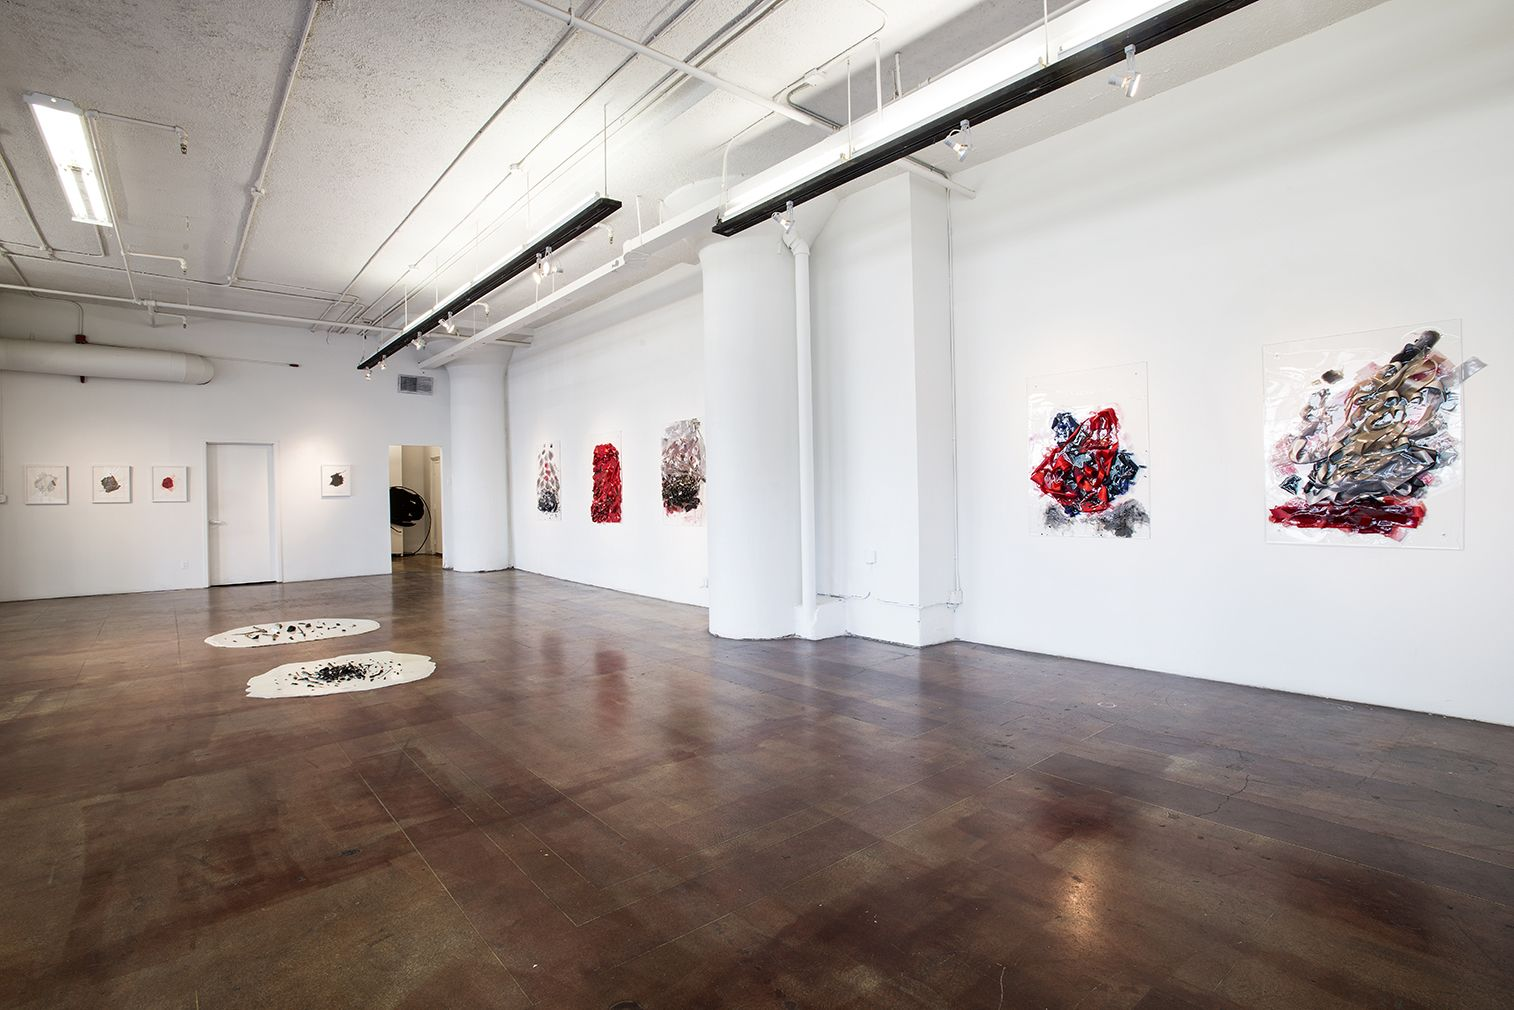 Installation View, Vadis Turner, Bells andBurn Piles, Geary Contemporary, 2016